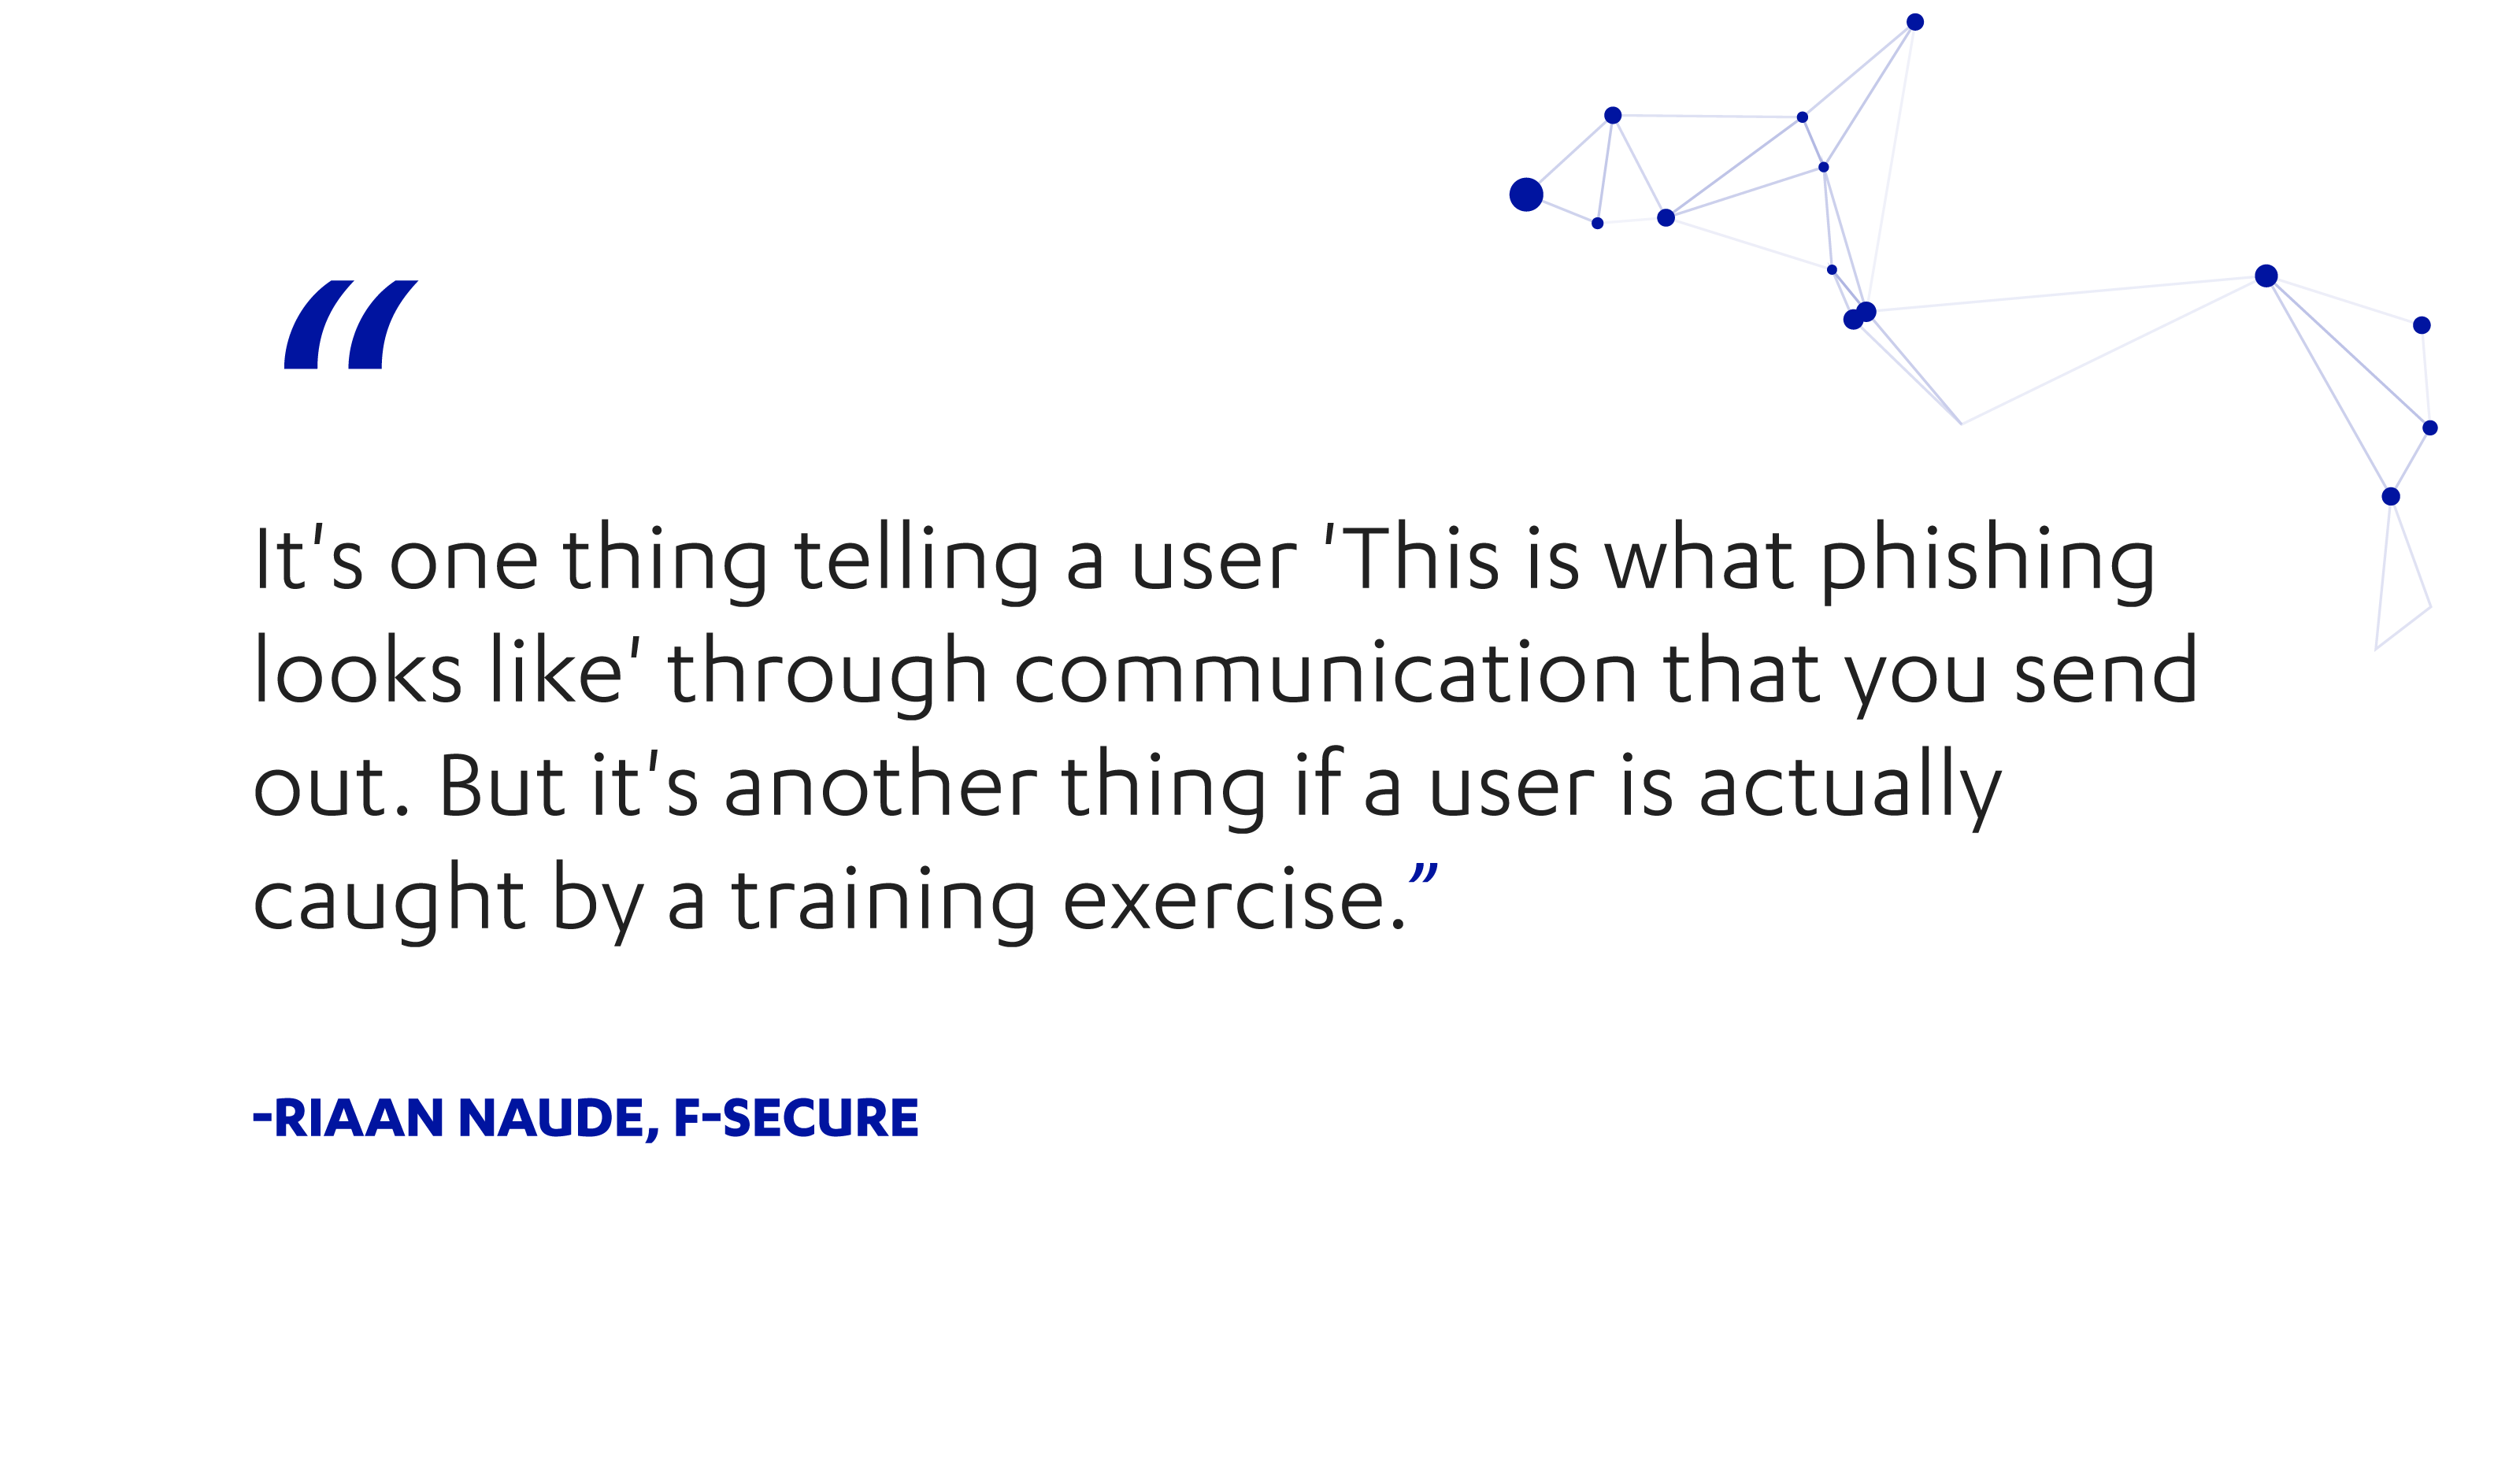 Riaan Naude of F-Secure on phishing simulation exercises